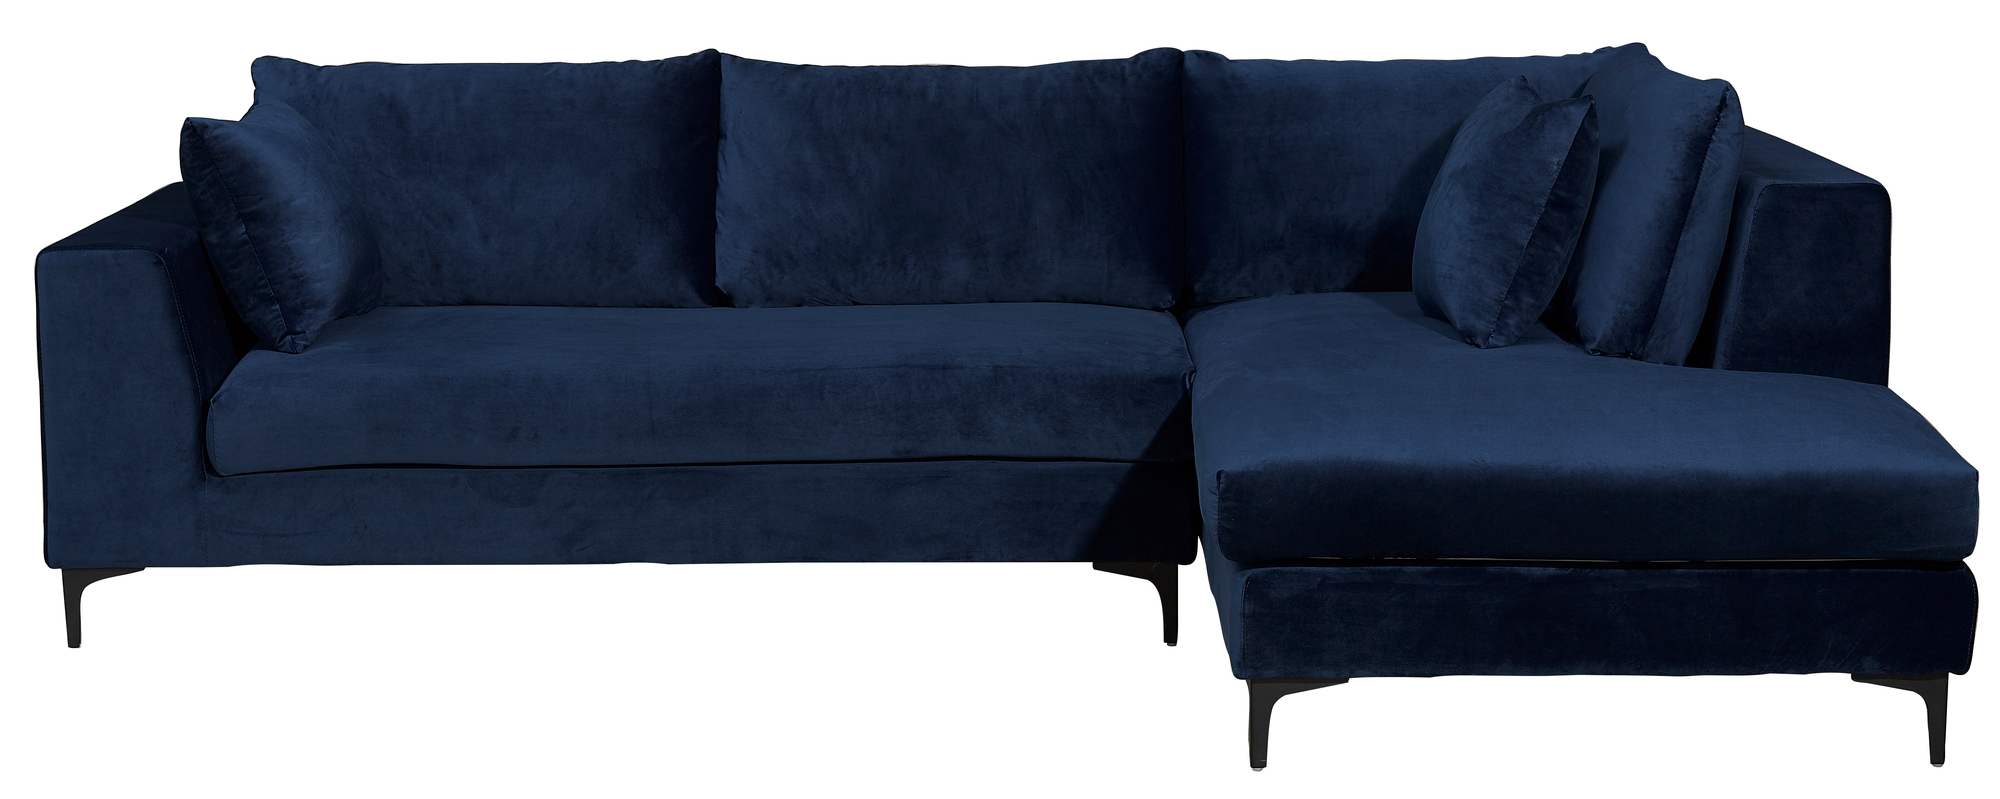 New navy blue velvet brooke 3 seater sofa with chaise ebay for 3 seater chaise sofa